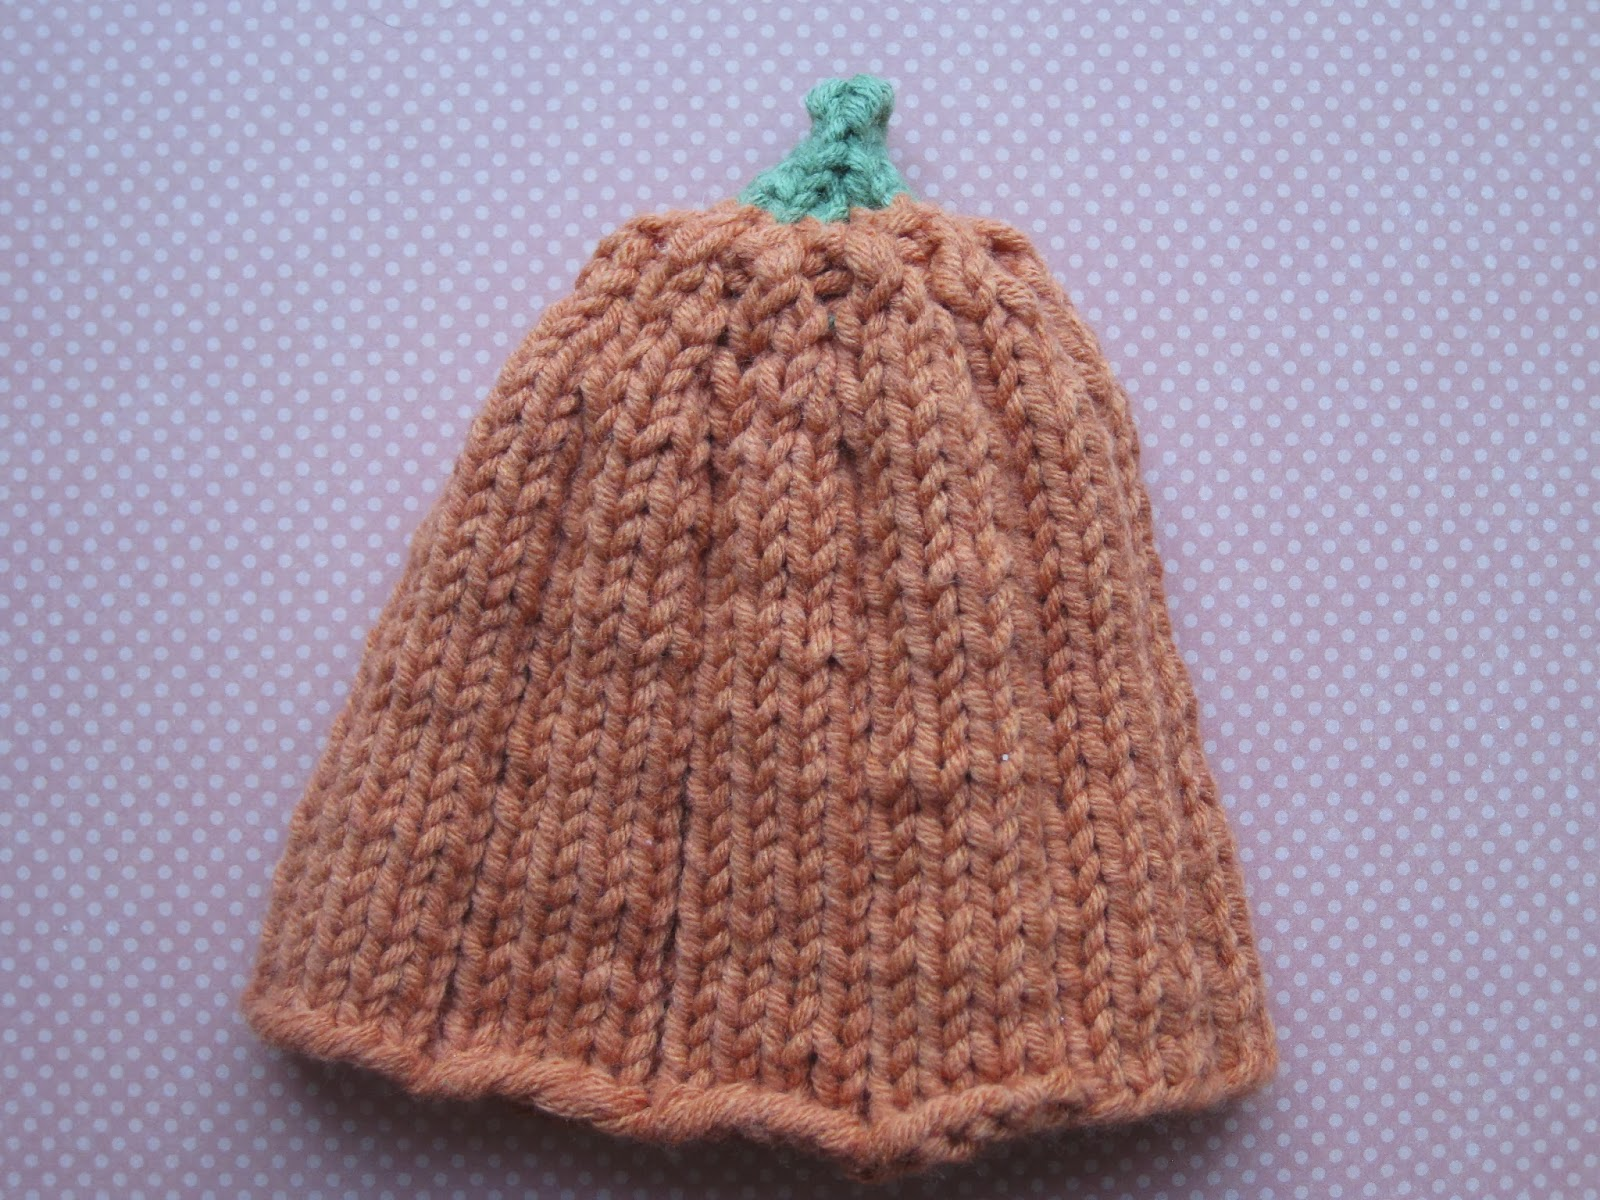 Knit Pattern For Baby Hat : Oma Socks: Newborn Pumpkin Hat Knitting Pattern